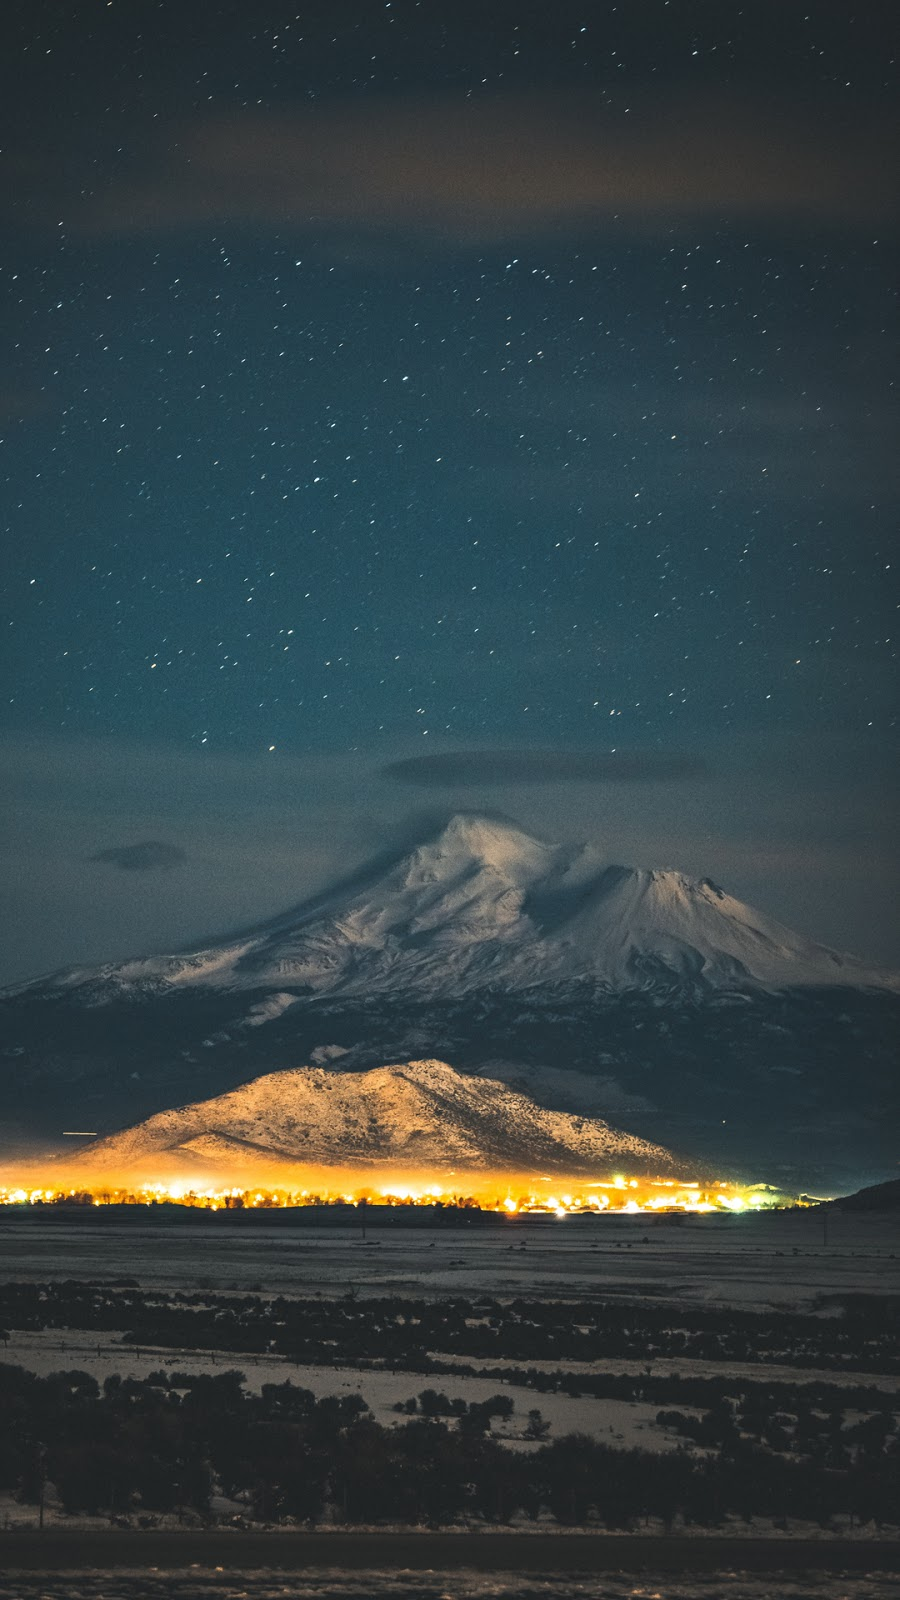 Starry mountain night